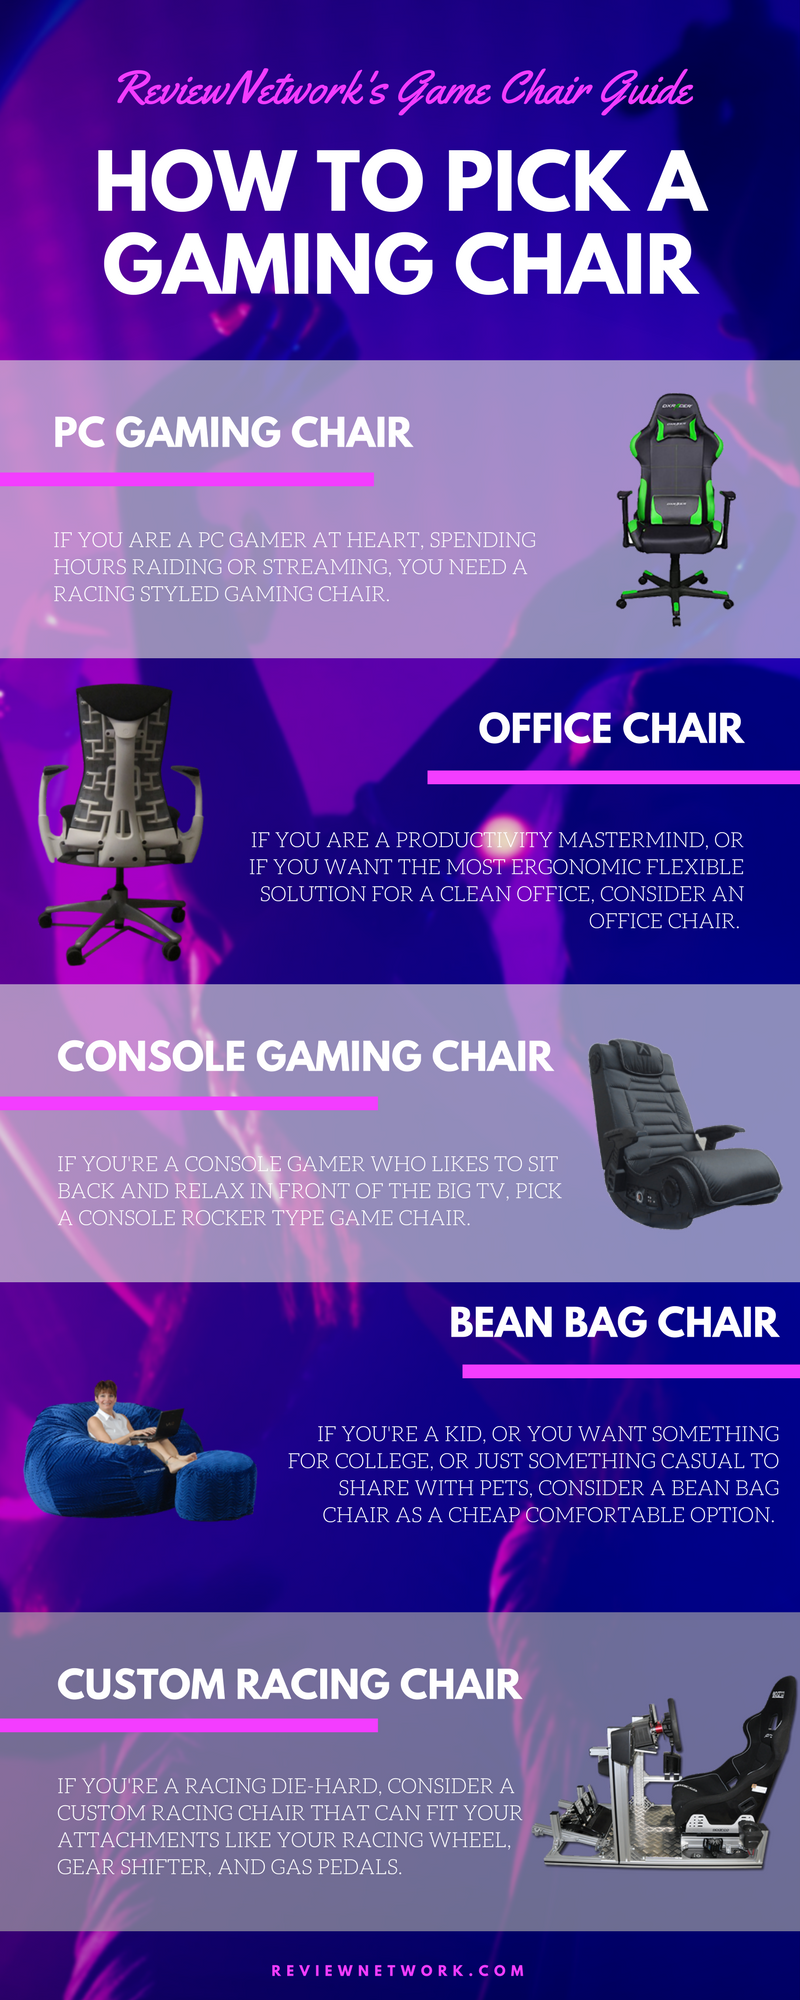 How to Pick a Gaming Chair